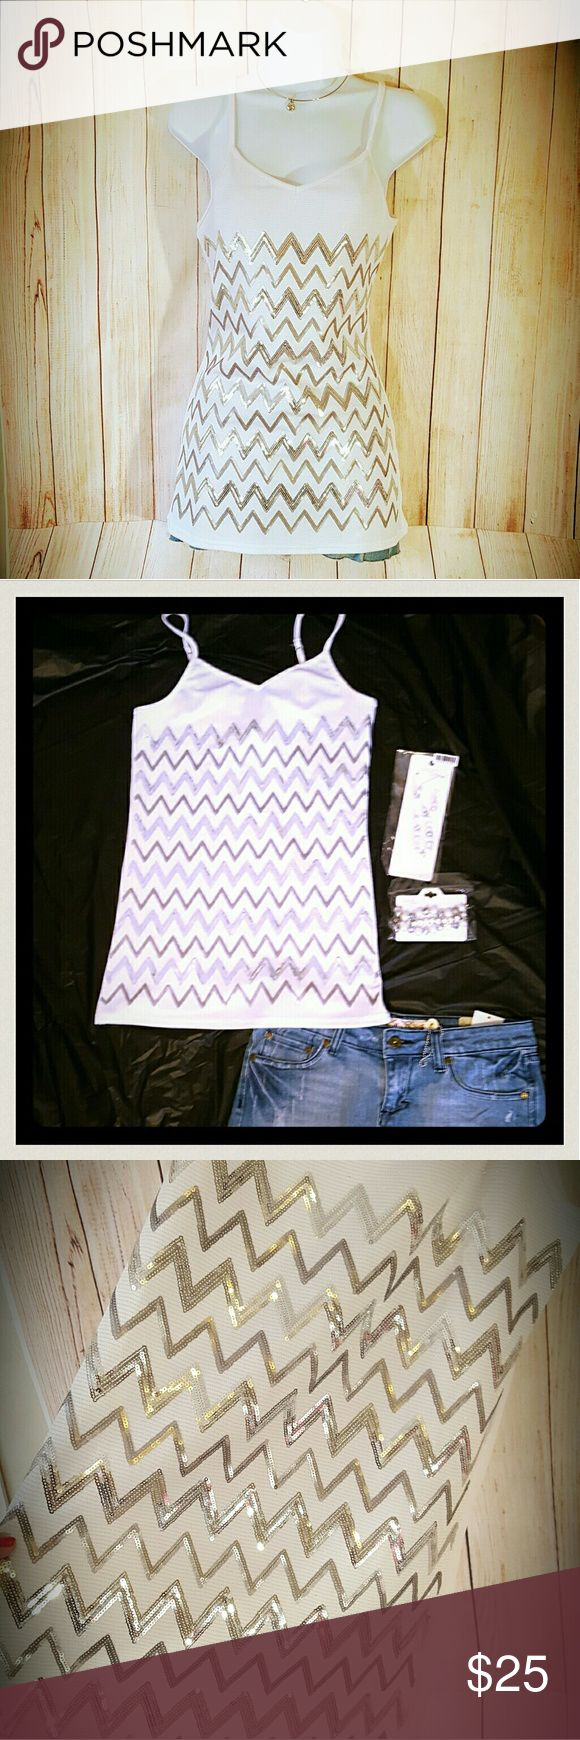 """White Tank Silver Chevron Sequins Shiny Stretchy Gorgeous white tank with shiny silver sequins. Brand: Vanity. Size medium (fitted but stretchy to fit most sizes). Adjustable shoulder straps to make it more conservative or more low cut. Still new with tags. Laying flat and unstretched, it measures 15.5"""" across the chest, 28"""" long.   Smoke free home. I will gladly bundle items to give you a discount (the more you buy, the cheaper I can let everything go!). Many items can be added on for only…"""